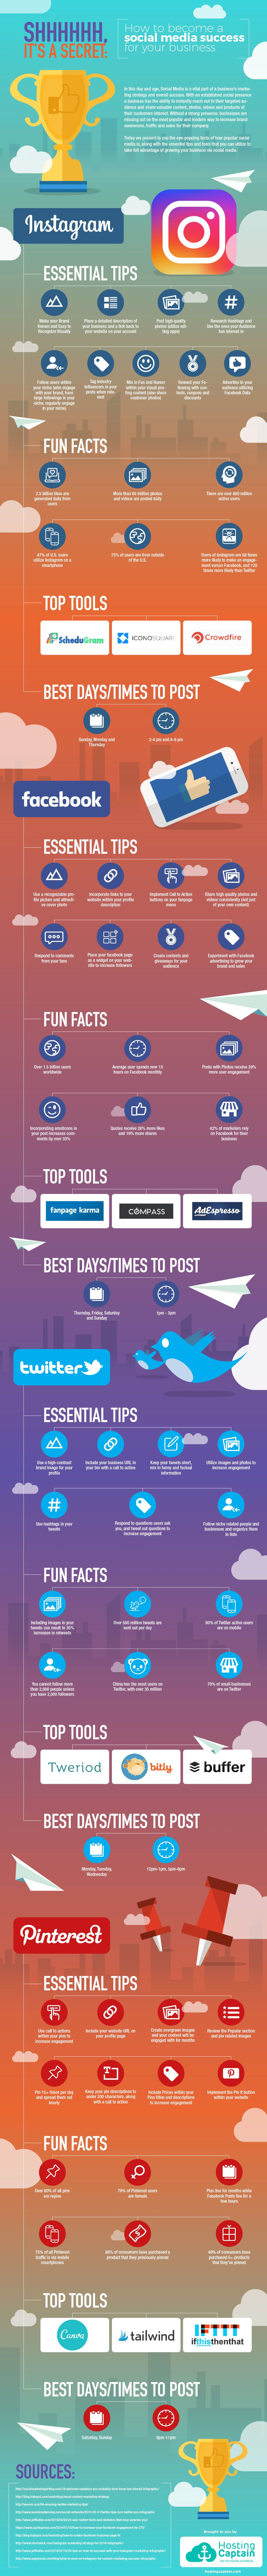 How to Feel Like a Social Media Professional (Infographic)